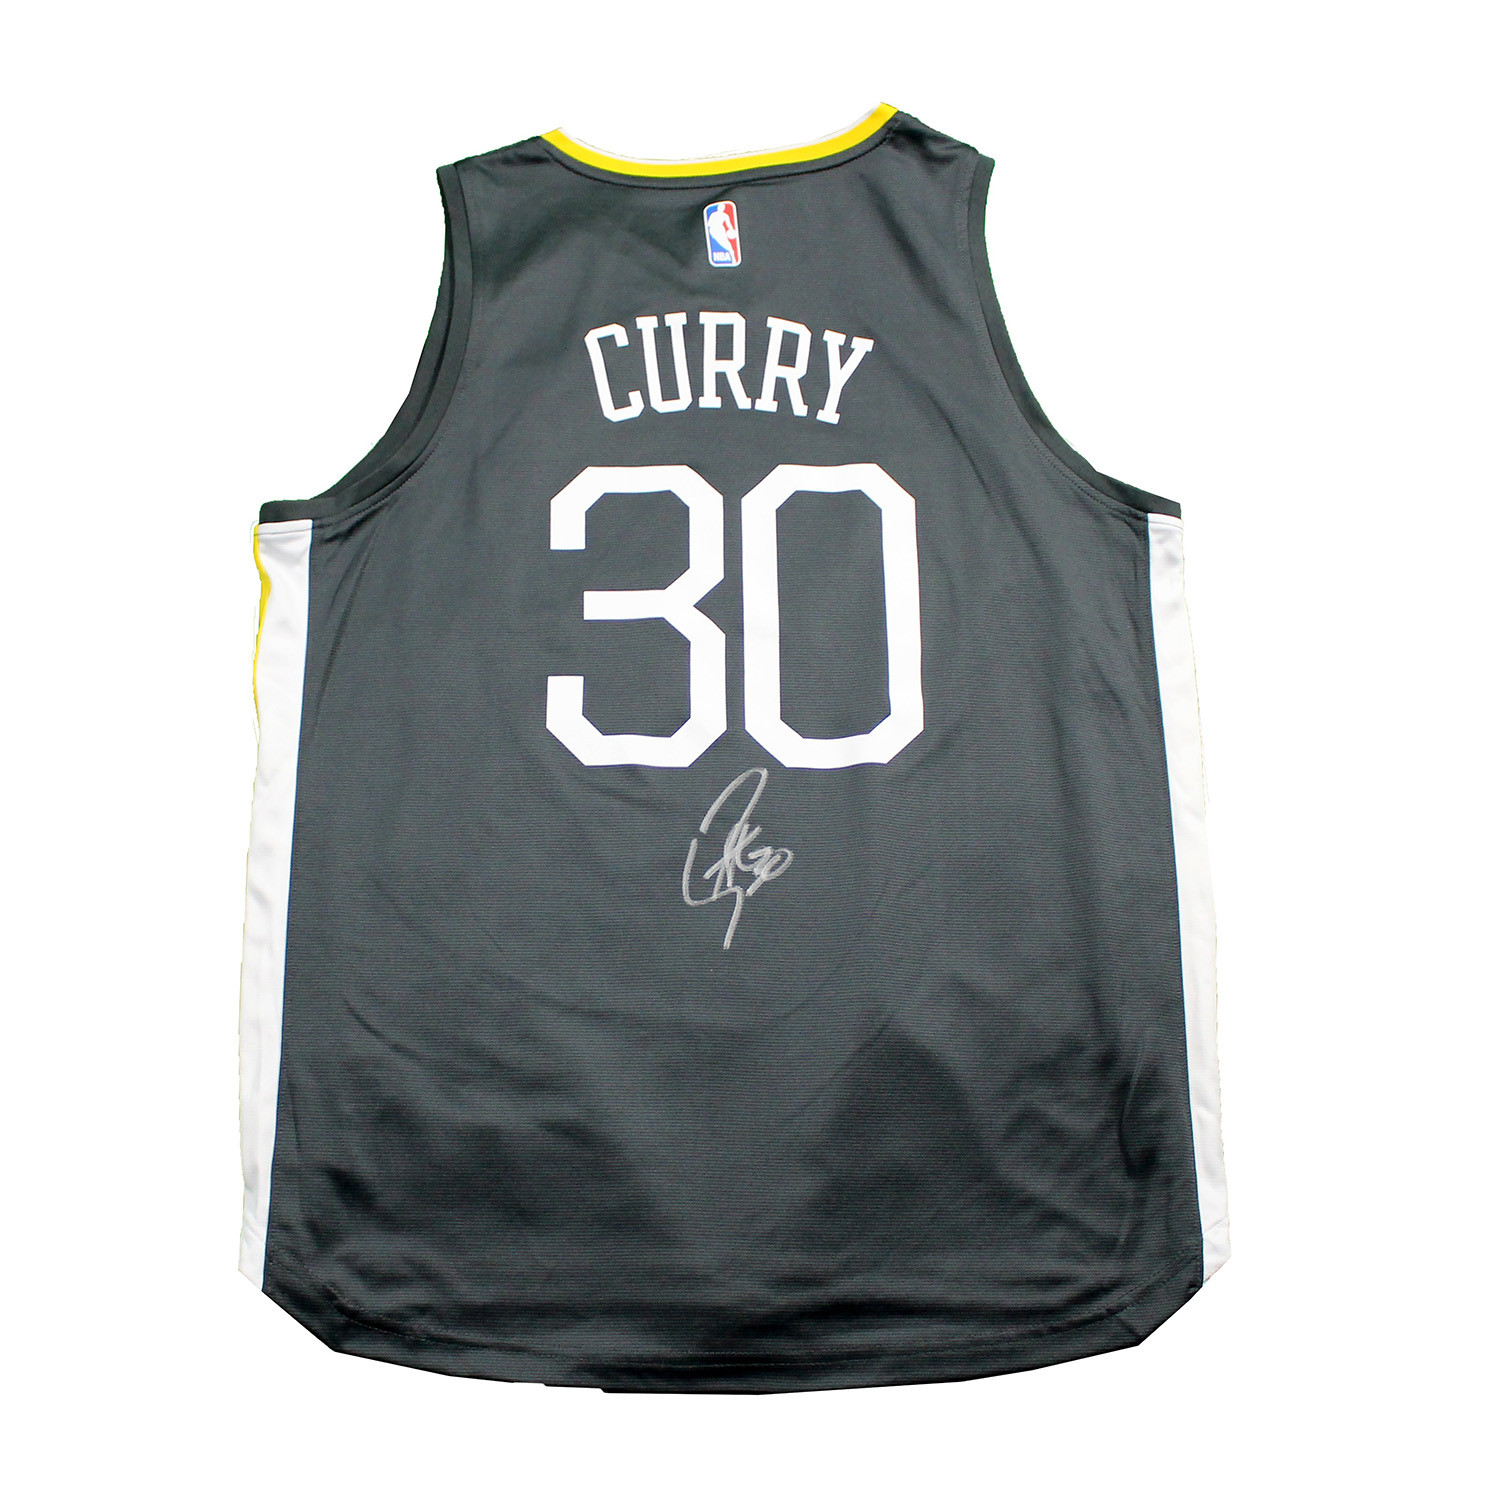 huge selection of 5d047 258ee Stephen Curry Signed Golden State Warriors Replica Jersey ...